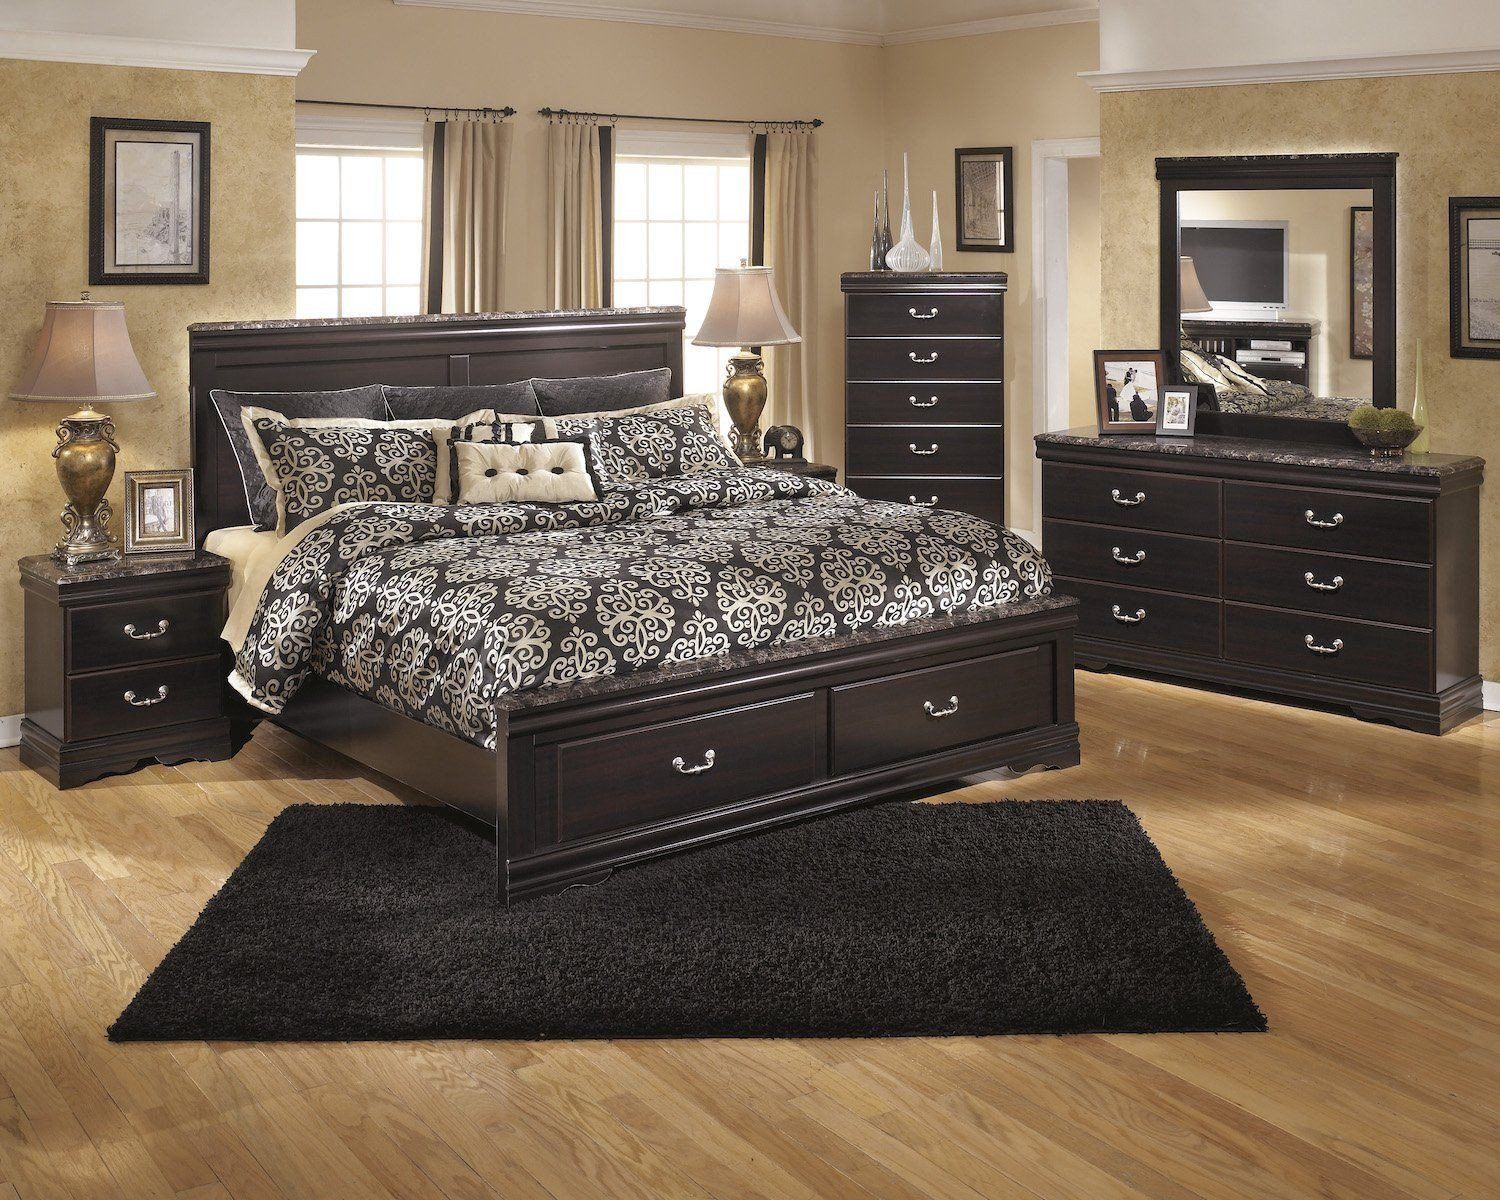 Ashley Catalina Bedroom Set Best Of ashley Esmarelda 5pc Queen Storage Bedroom Set with Chest In